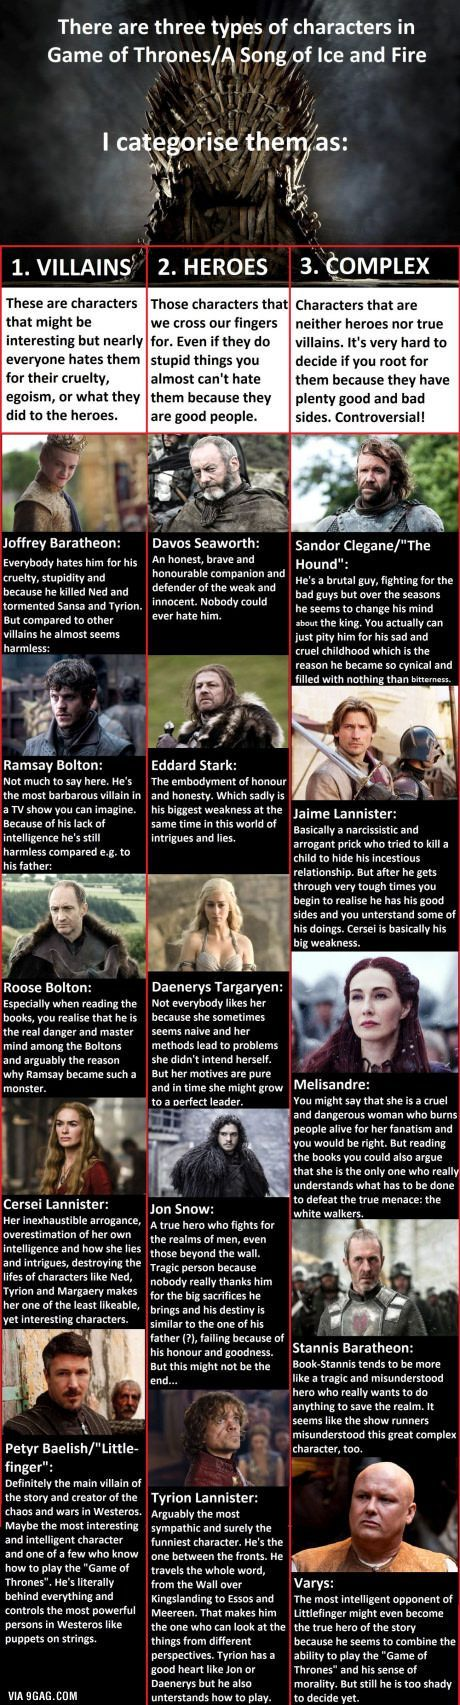 17 days left! A little analysis of the Game of Thrones characters I did. (Just